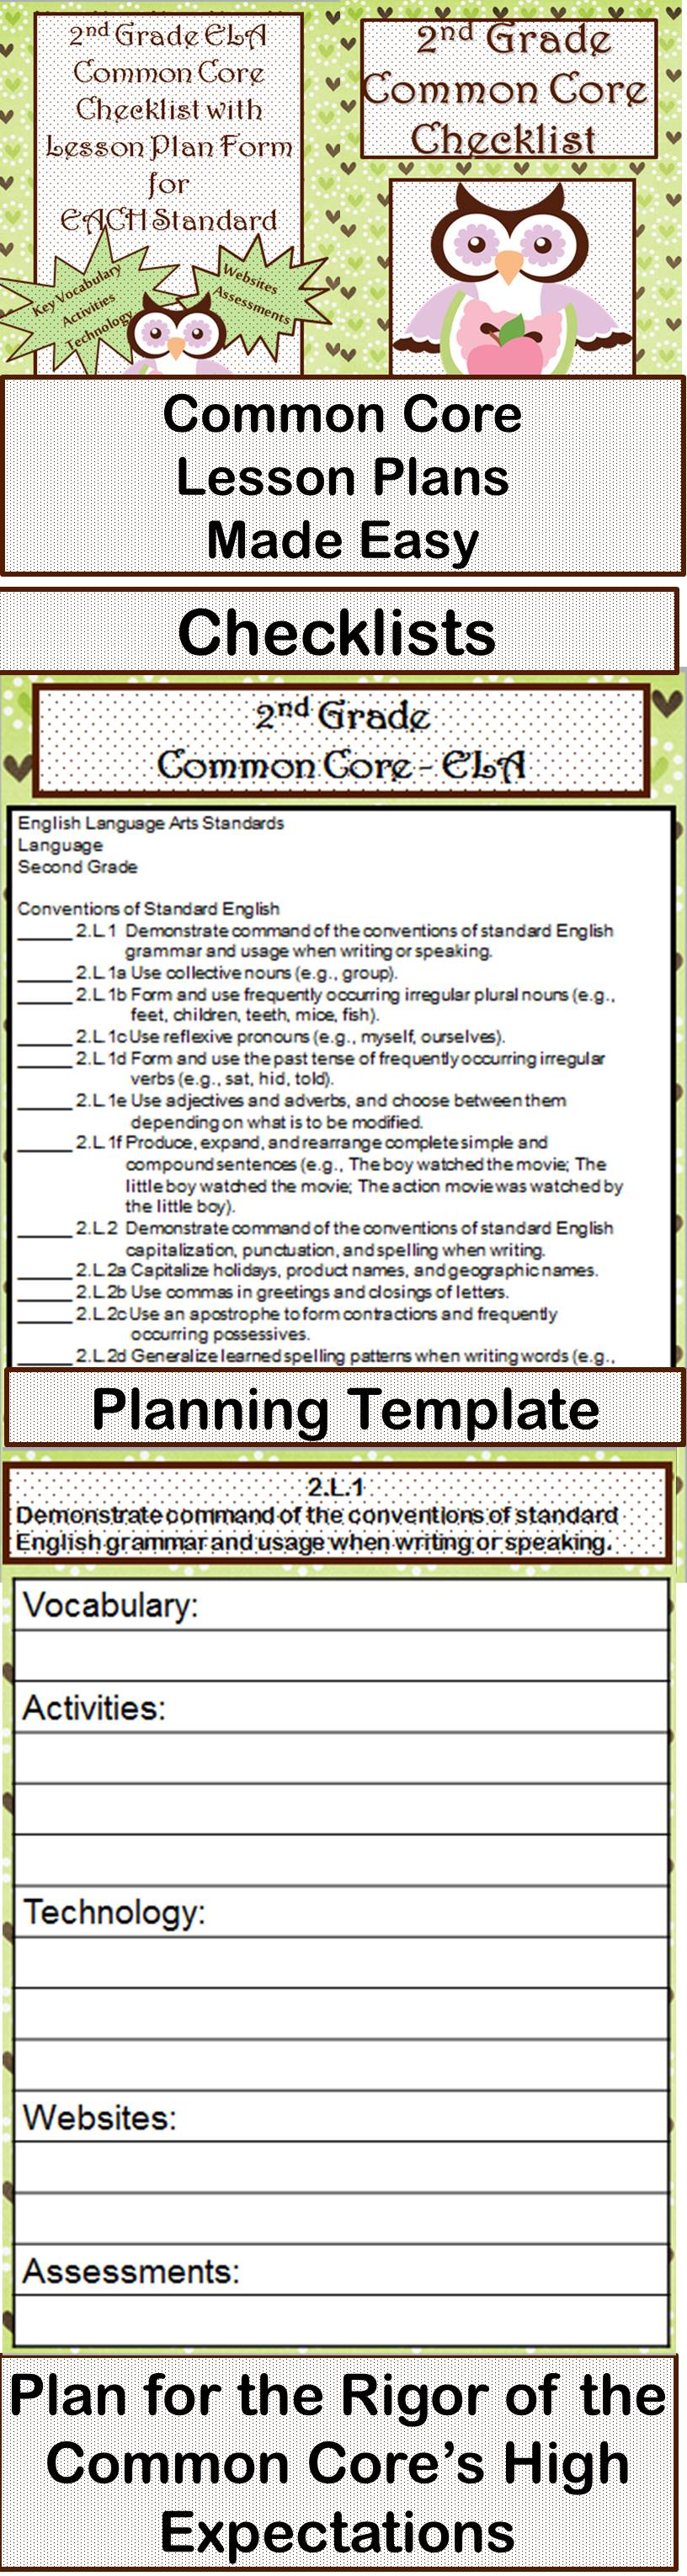 Nd Grade ELA Common Core Checklist Lesson Planning Form - Lesson plan template using common core standards